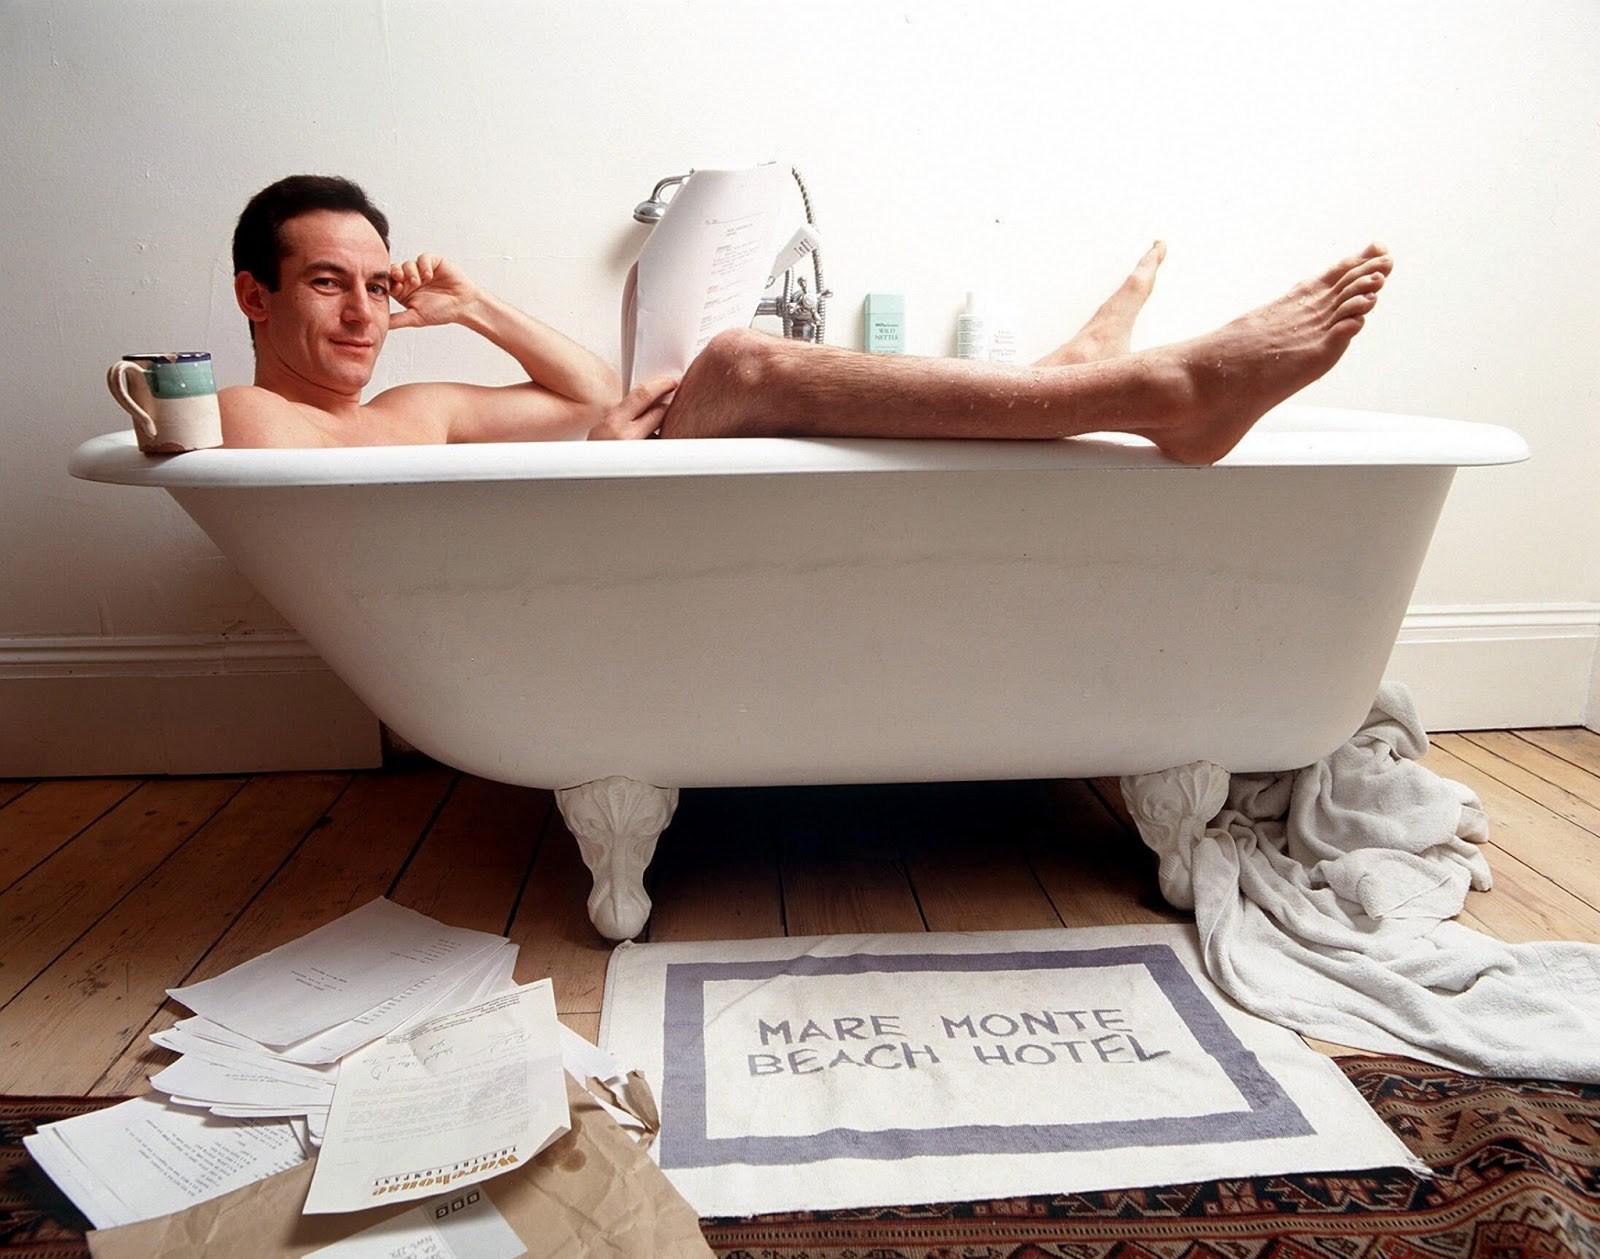 Cialis. what's with the bath tubs, already? – effect measure